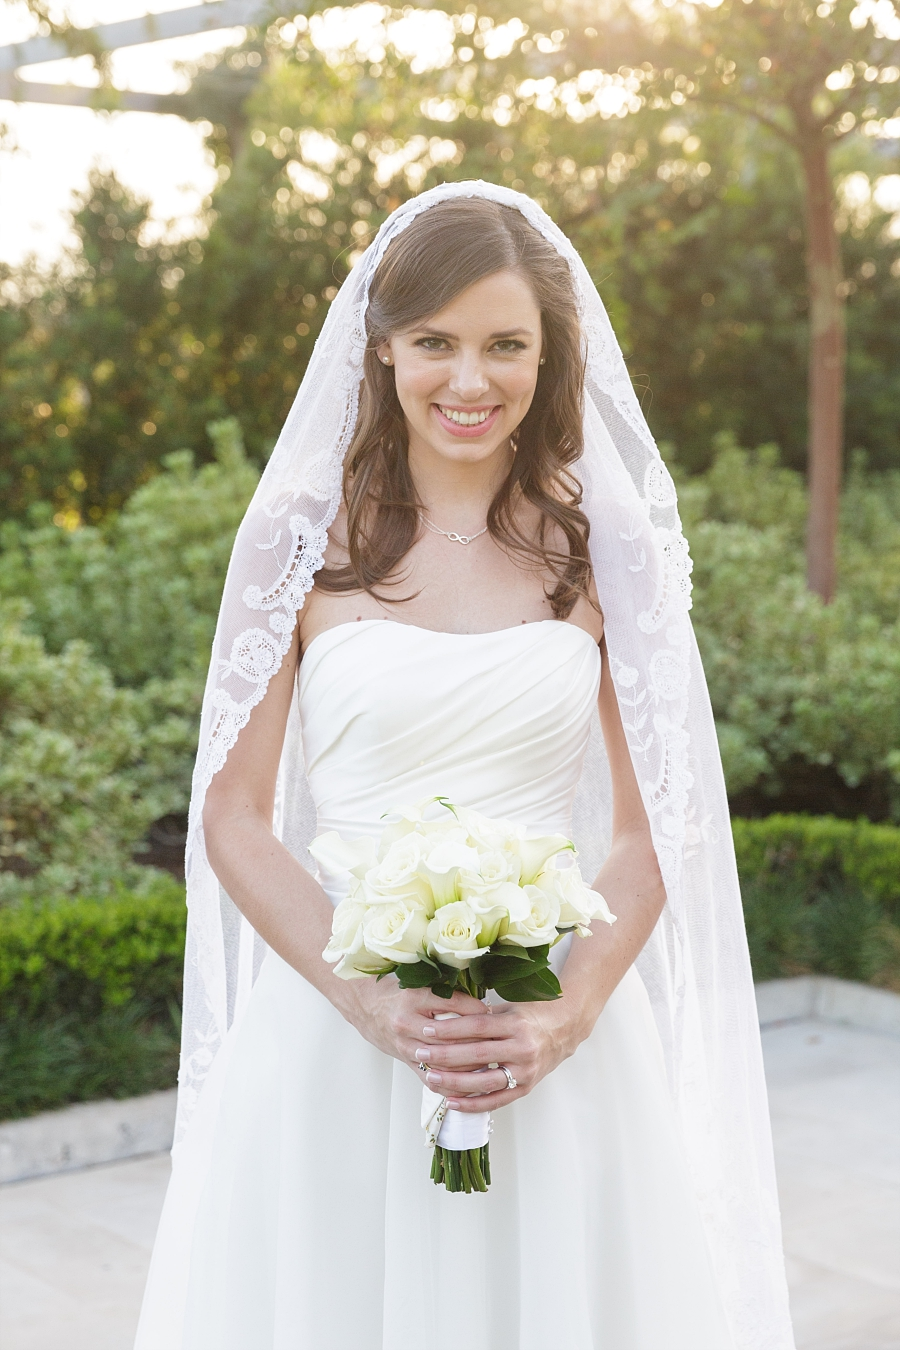 Stacy-Anderson-Photography-McGovern-Centennial-Gardens-Houston-Wedding-Photographer_0052.jpg